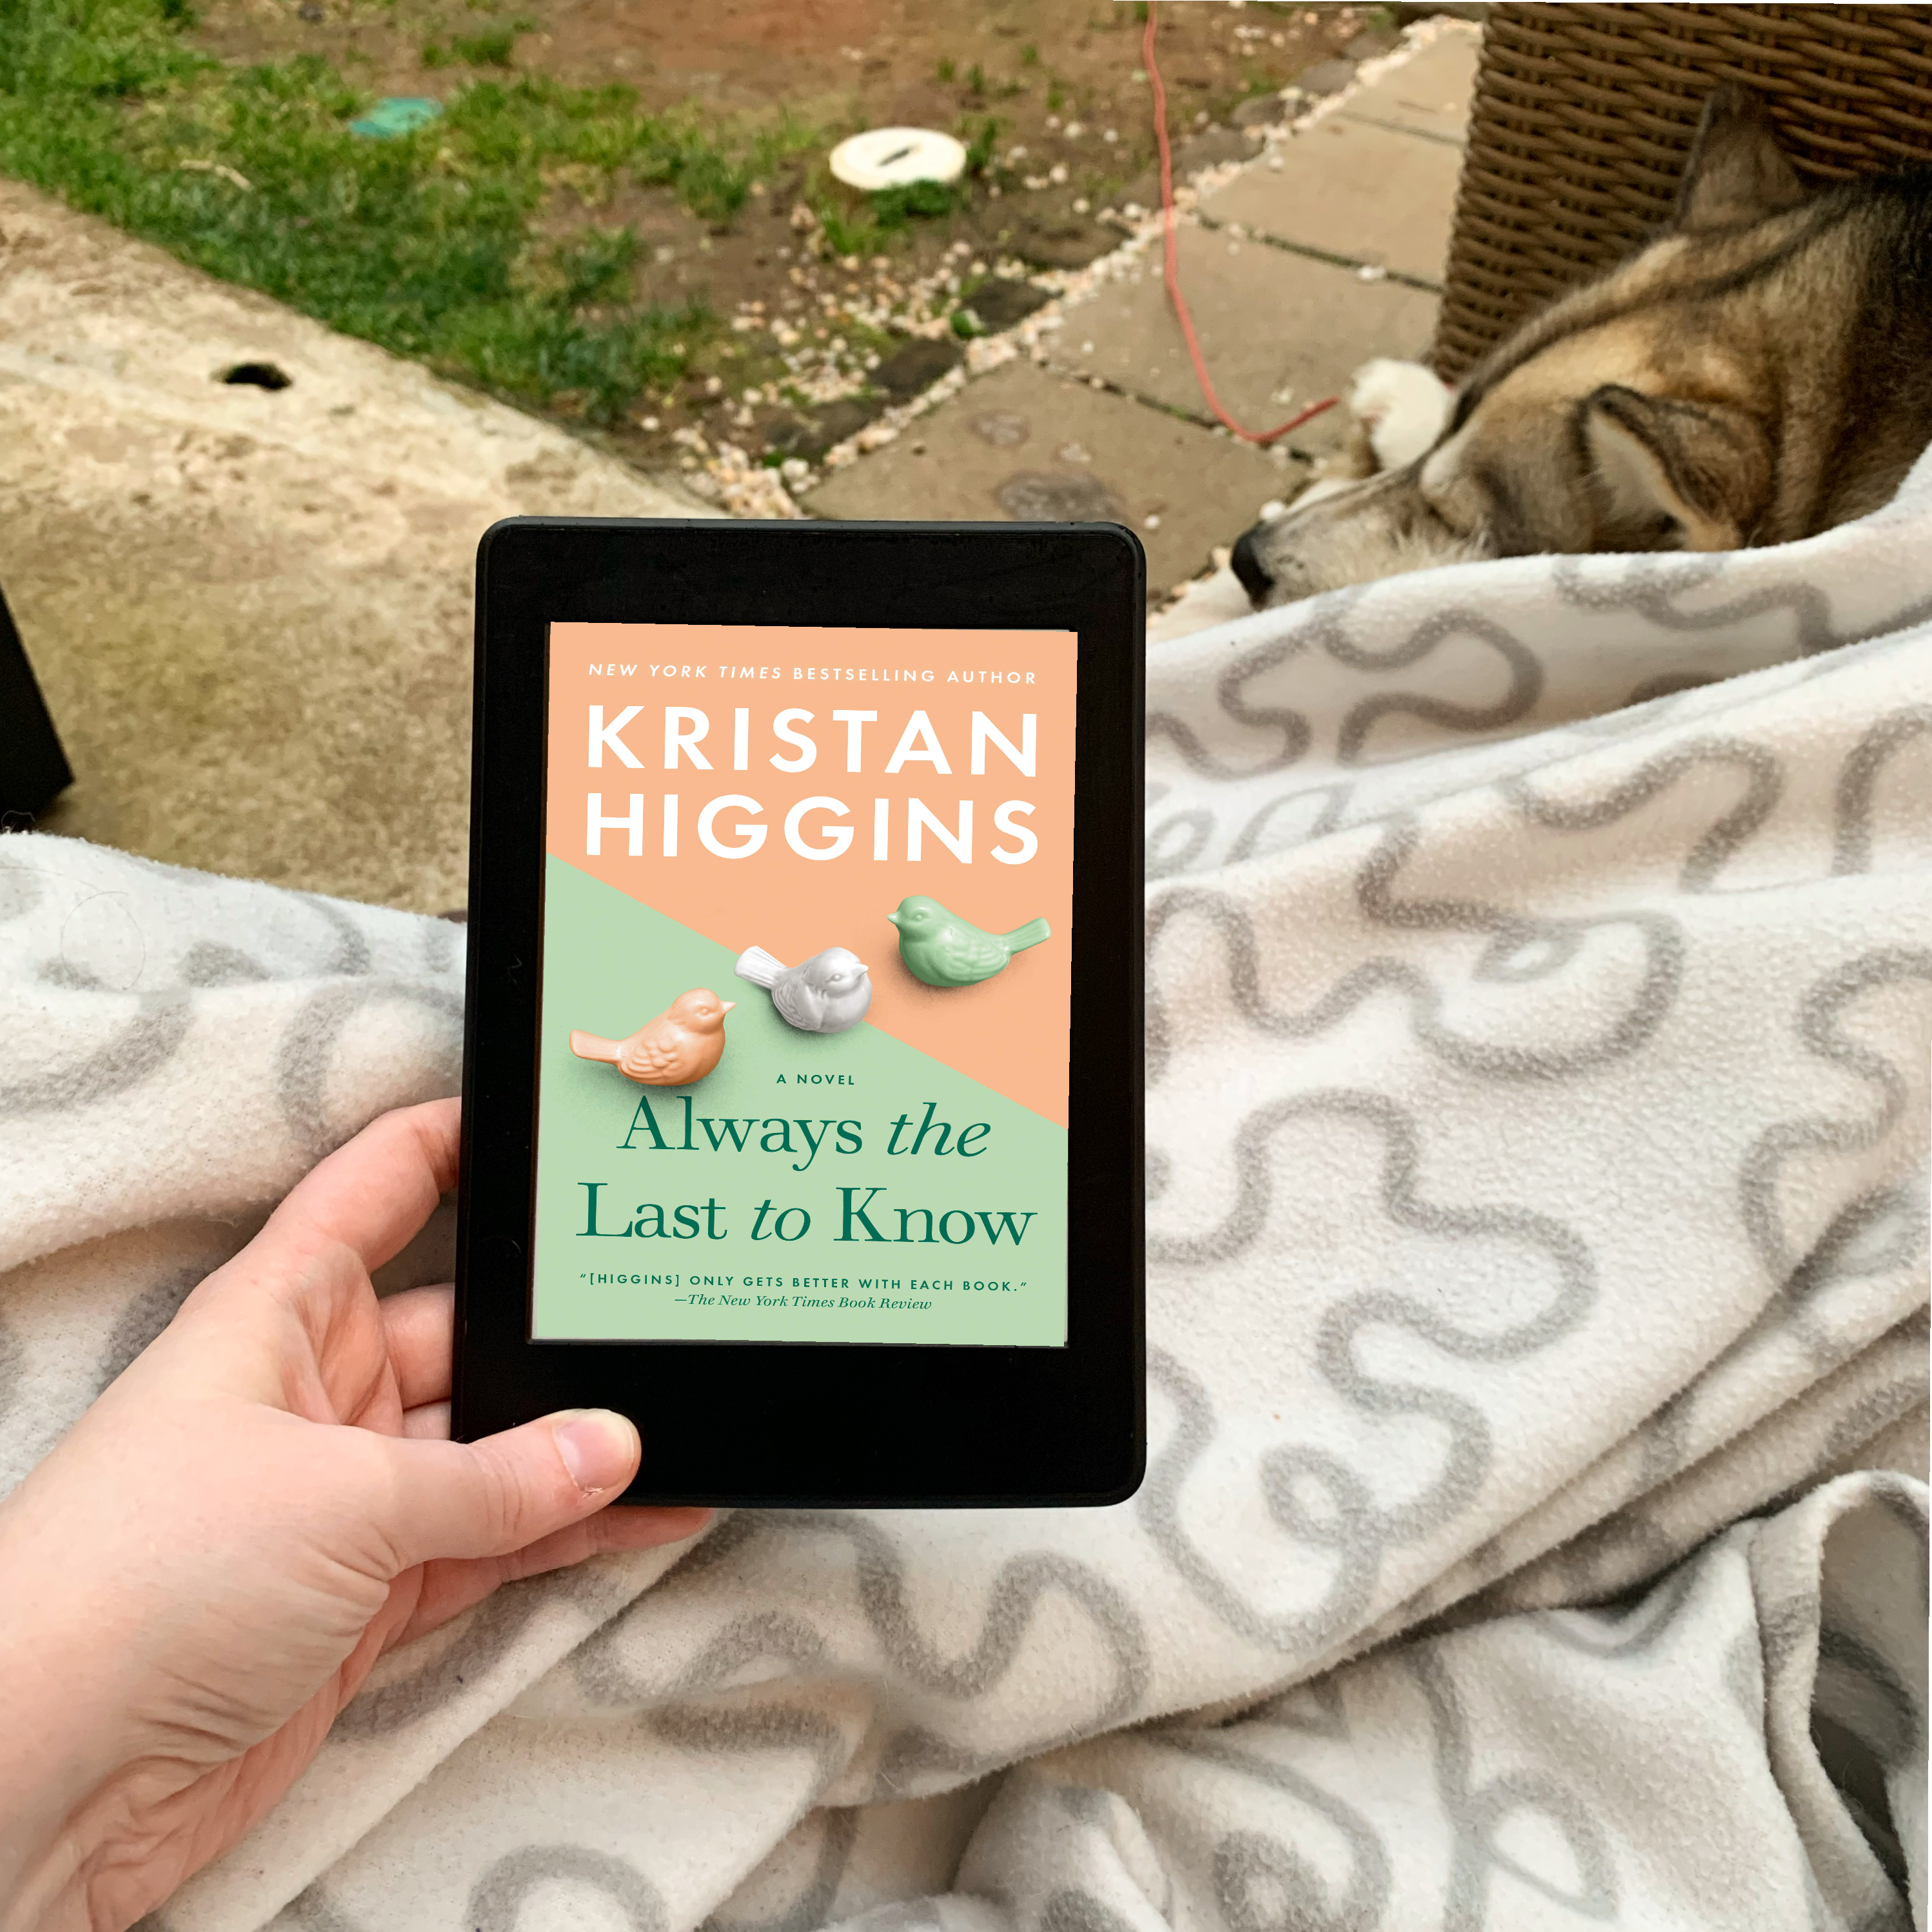 Always The Last to Know ebook on Kindle with husky